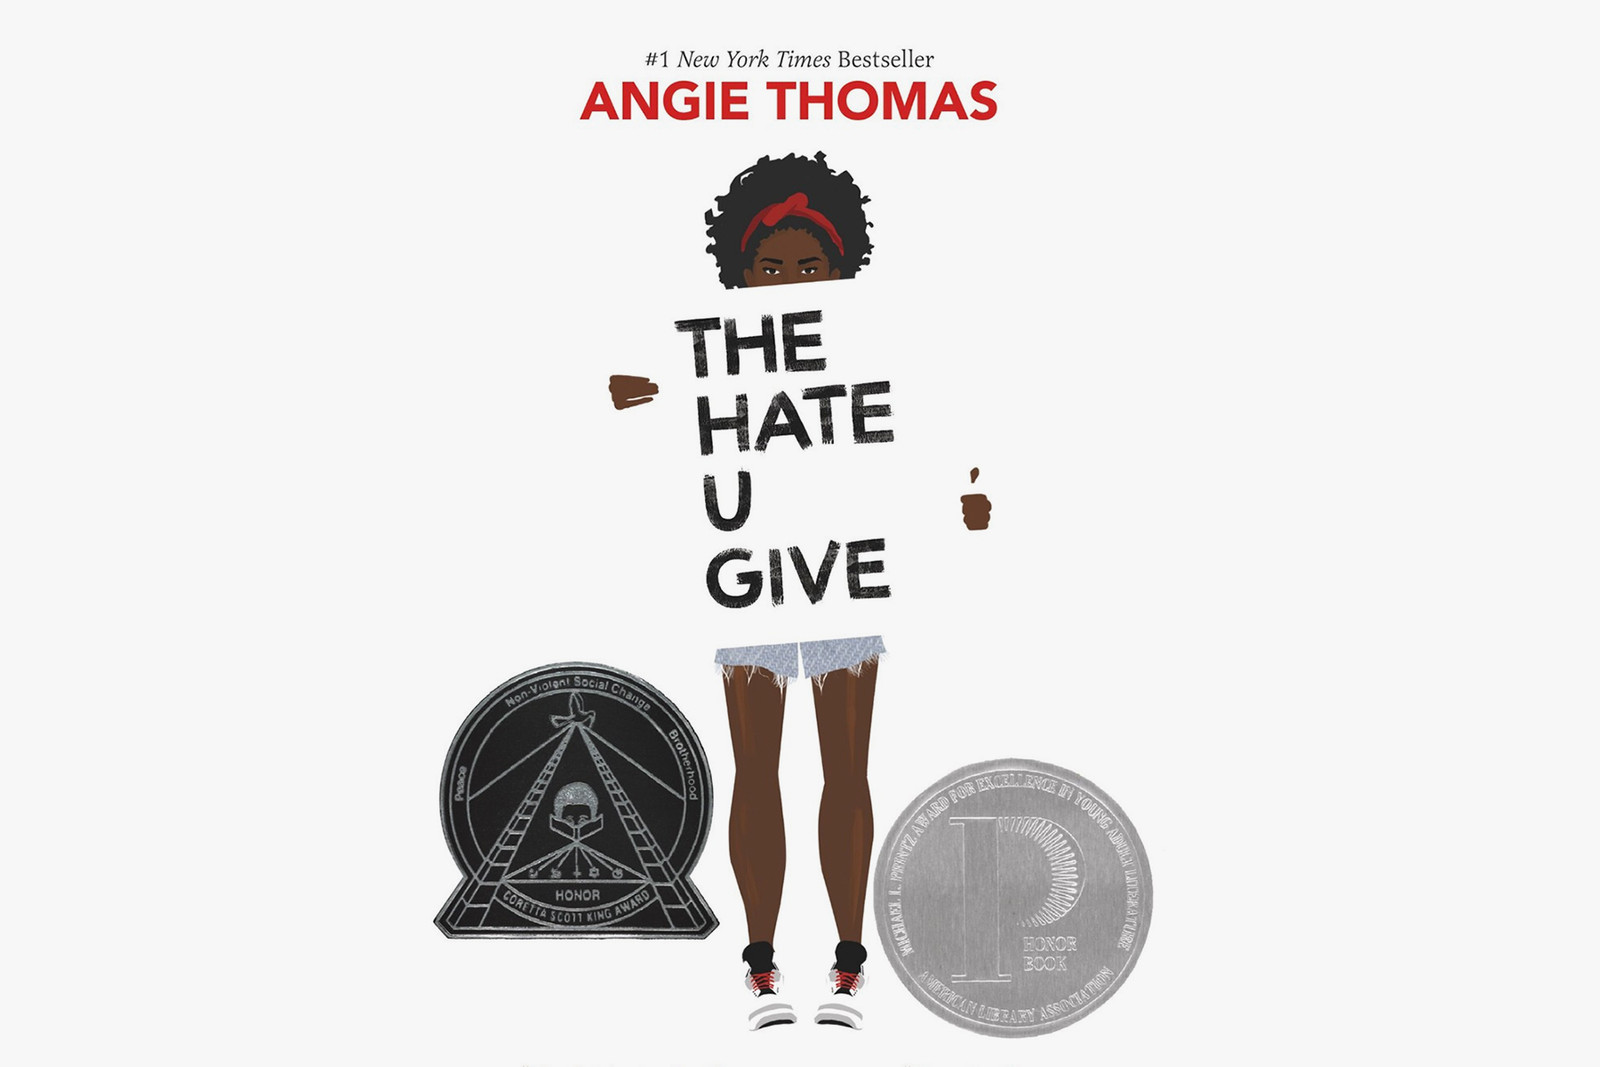 book club recommendations new york times bestseller novel non fiction the hate u give call me by your name shoe dog nike amandla stenberg